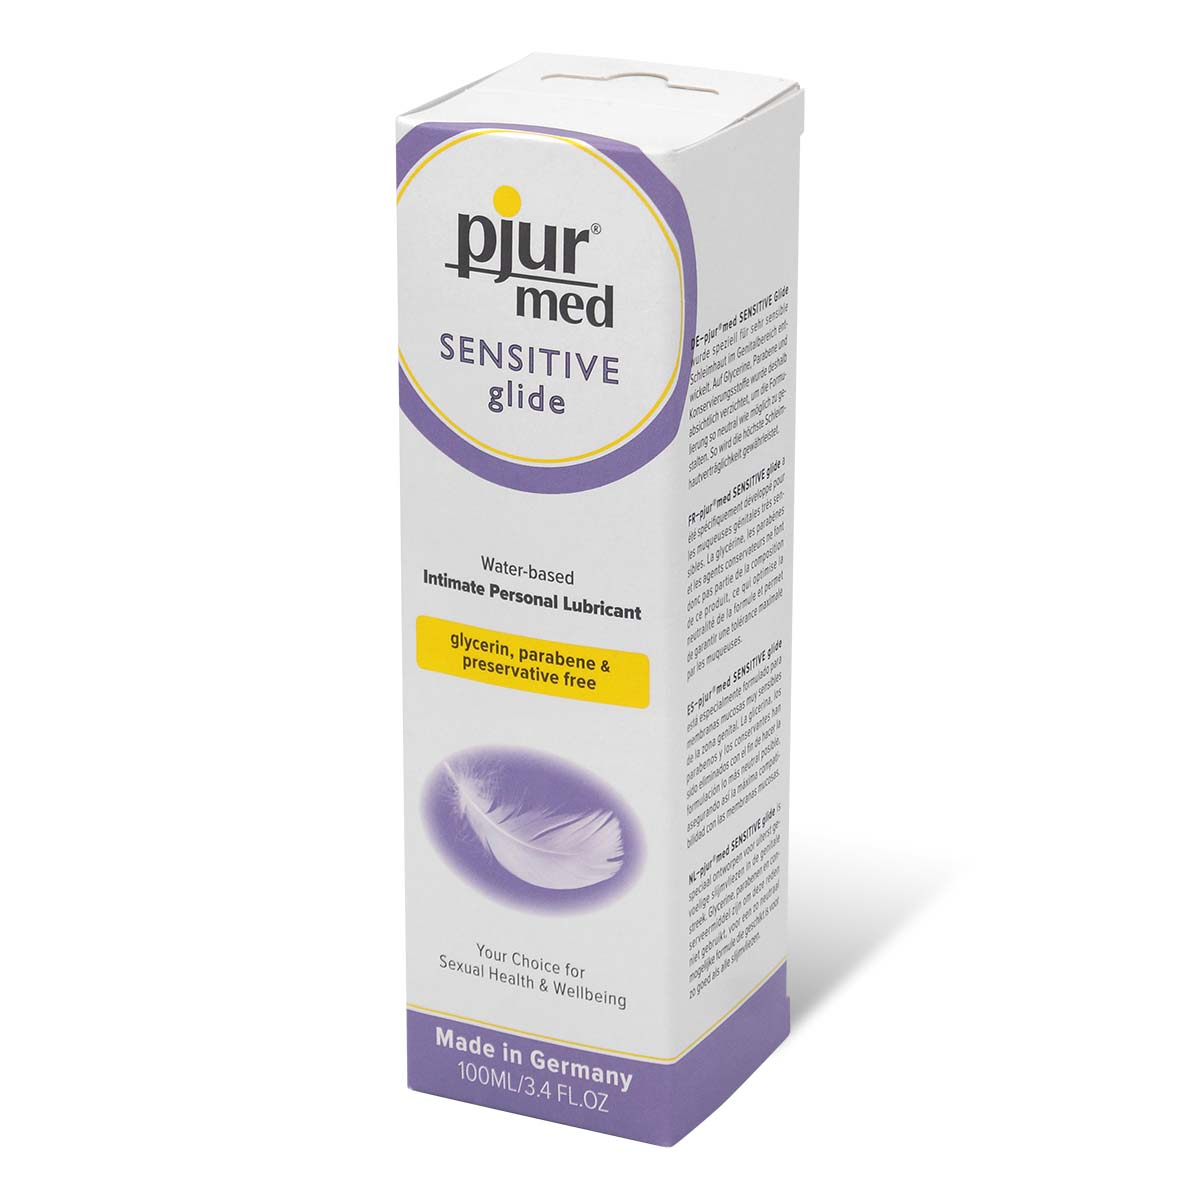 pjur med SENSITIVE glide 100ml Water-based Lubricant